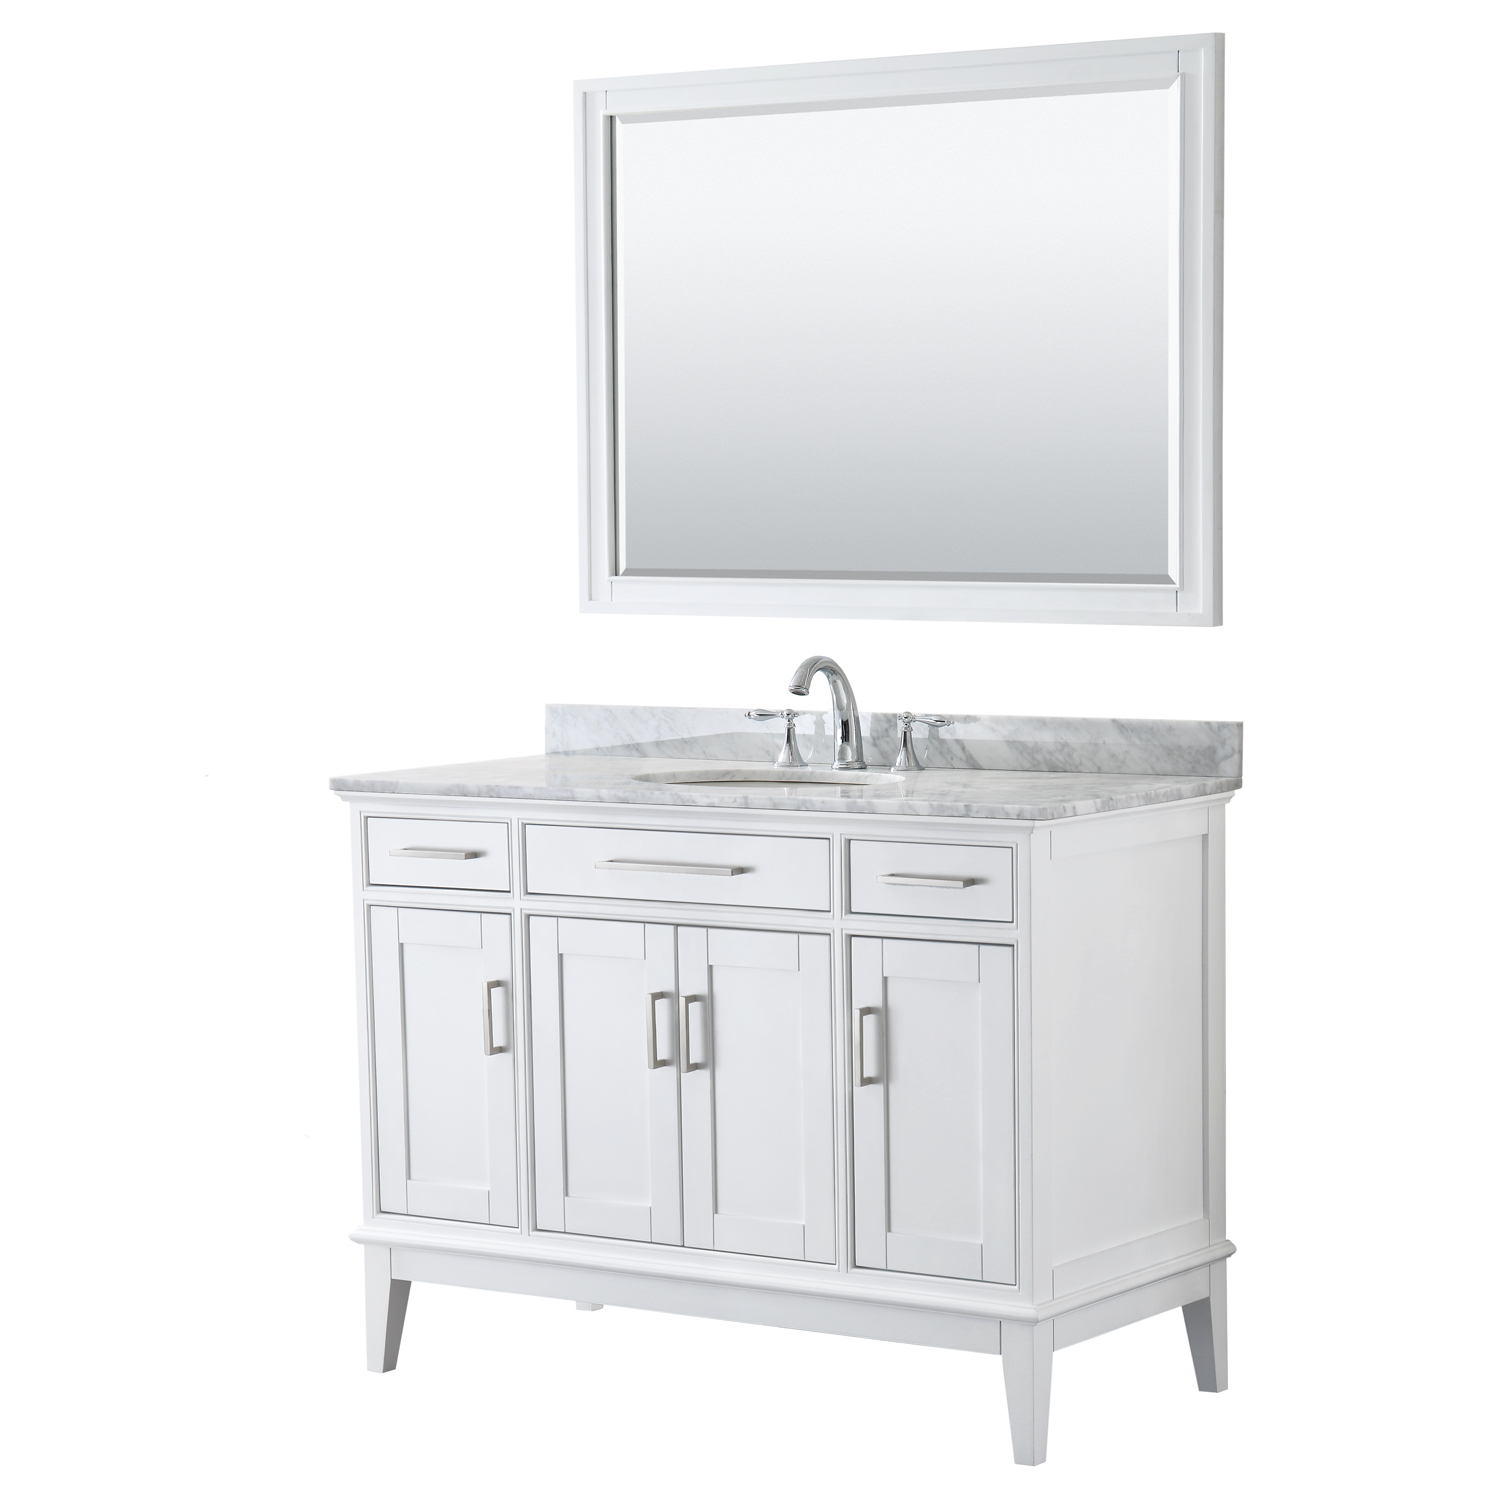 Margate 48 Single Bathroom Vanity White Beautiful Bathroom Furniture For Every Home Wyndham Collection